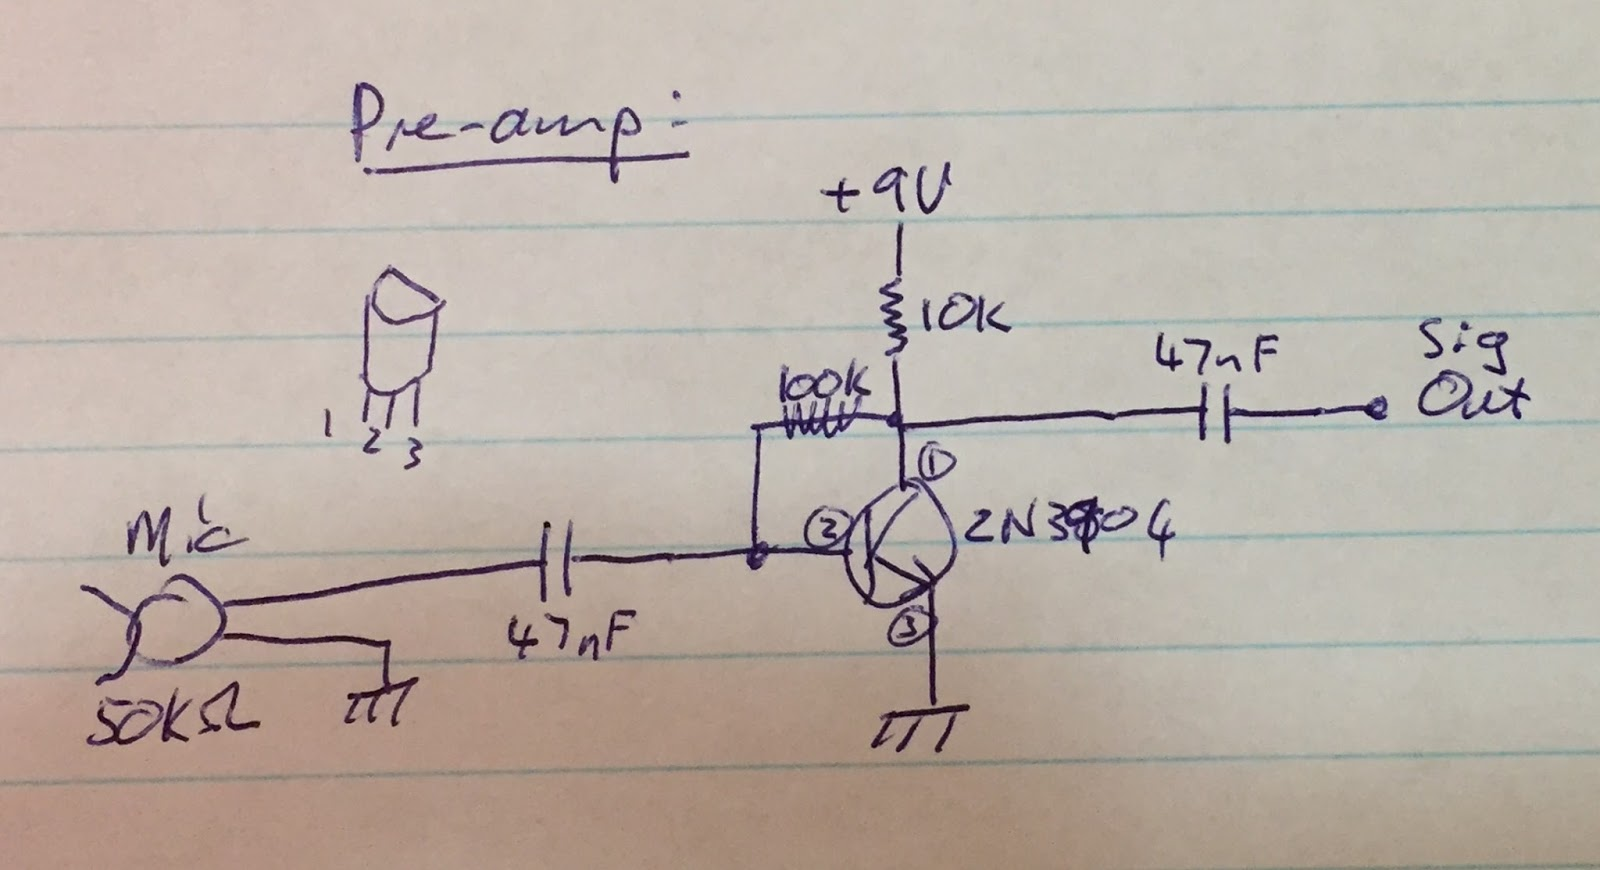 Zs6svj Simple Audio Preamplifier Circuit Using Single Transistor 2n3904 The Third Type Of Input Is Normal Line In Or Modern Dynamic Microphone Such As Comes With Yaesu Ft991 Output From Your Computer